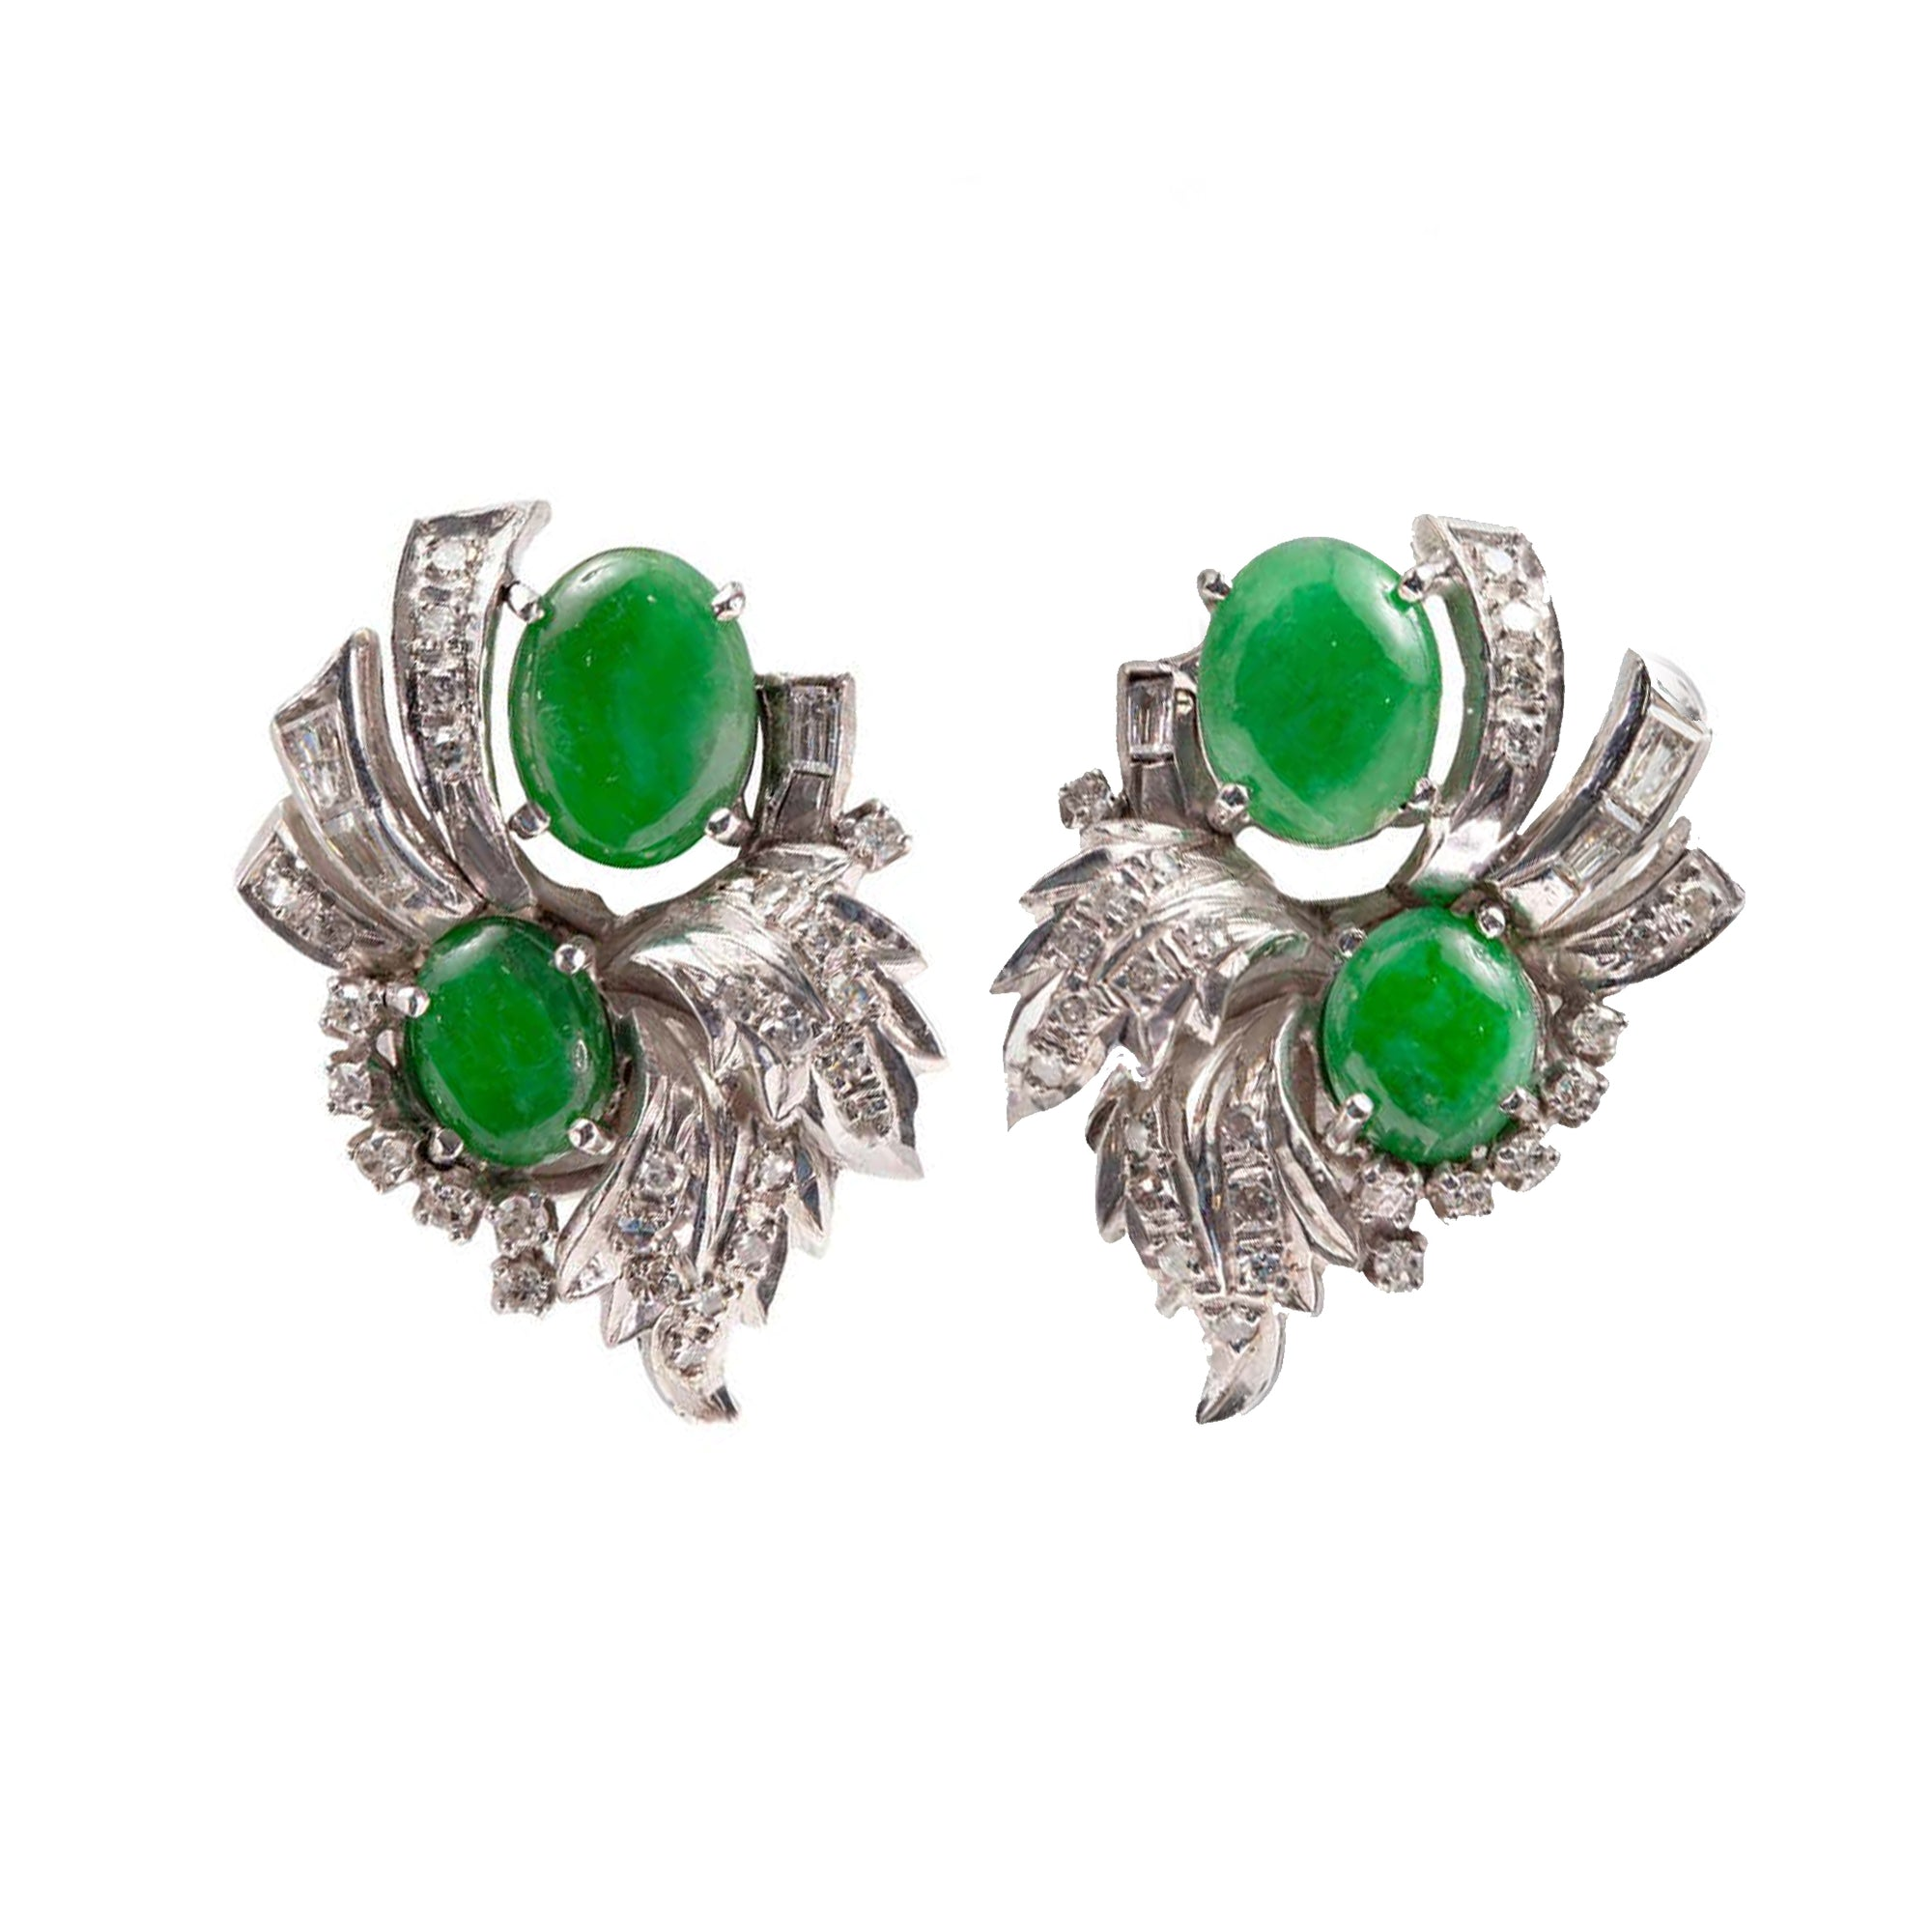 Pair of 1950s Natural Apple Green Jadeite Jade and Diamond Clip-On Earrings